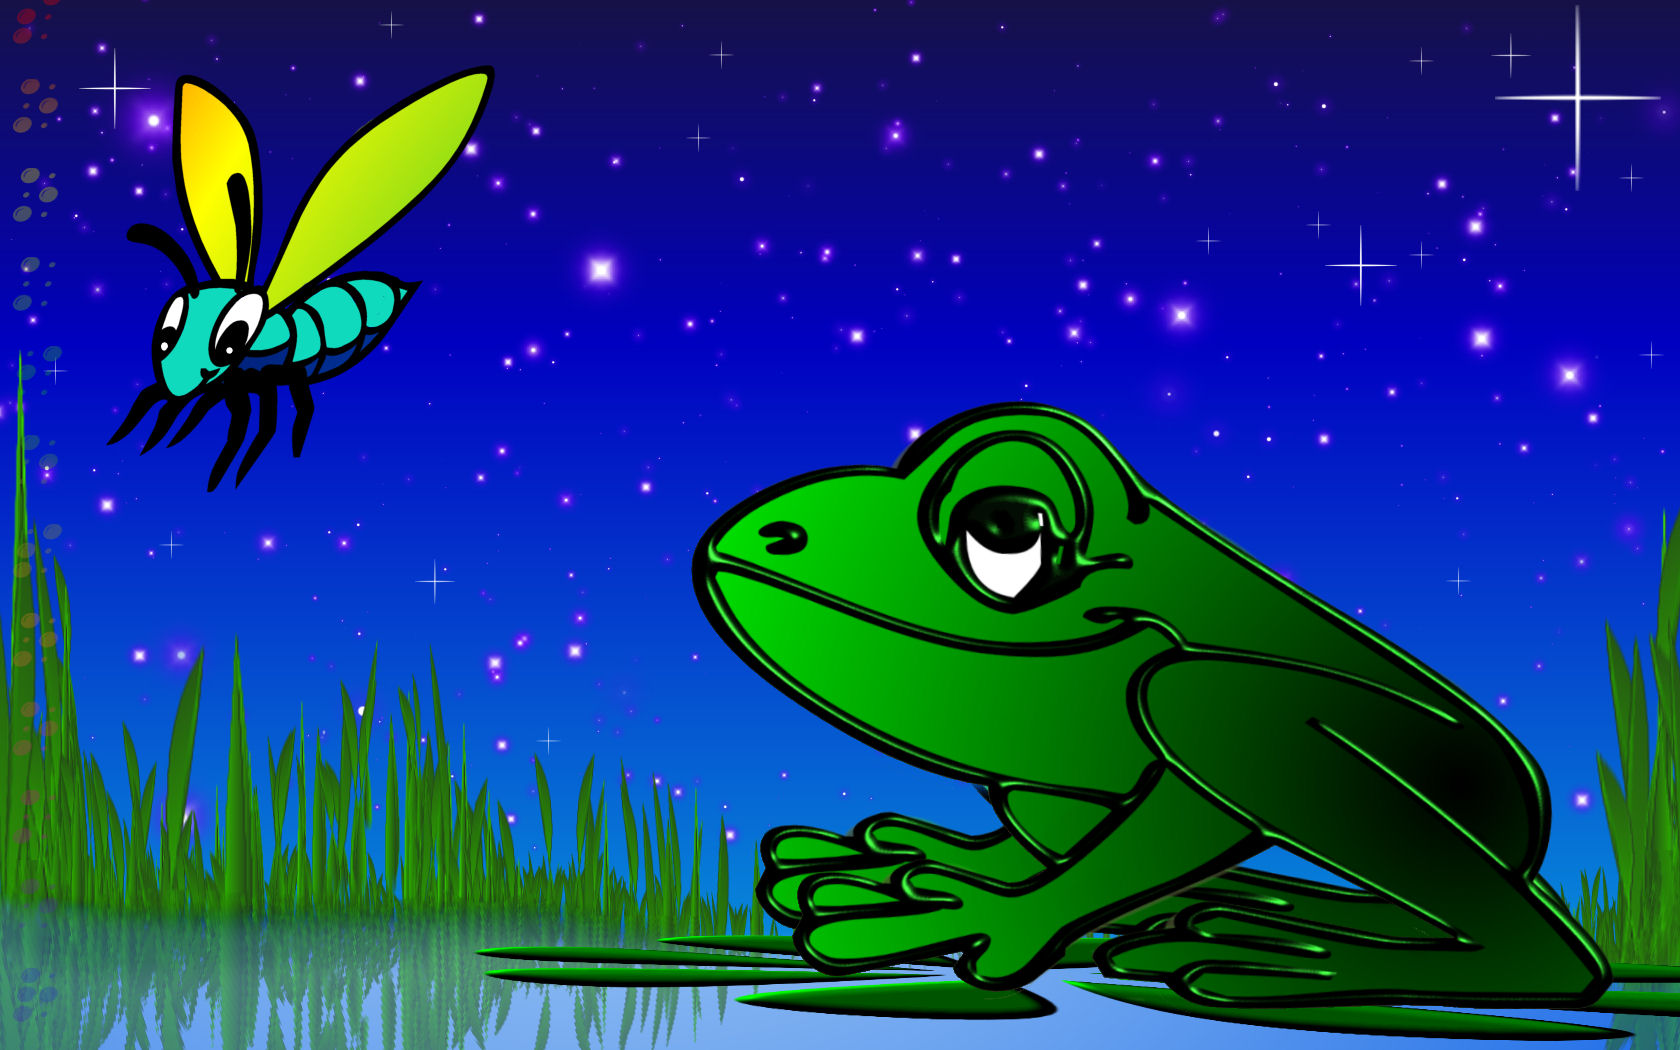 Sookie Frog And Fly Wallpaper by sookiesooker